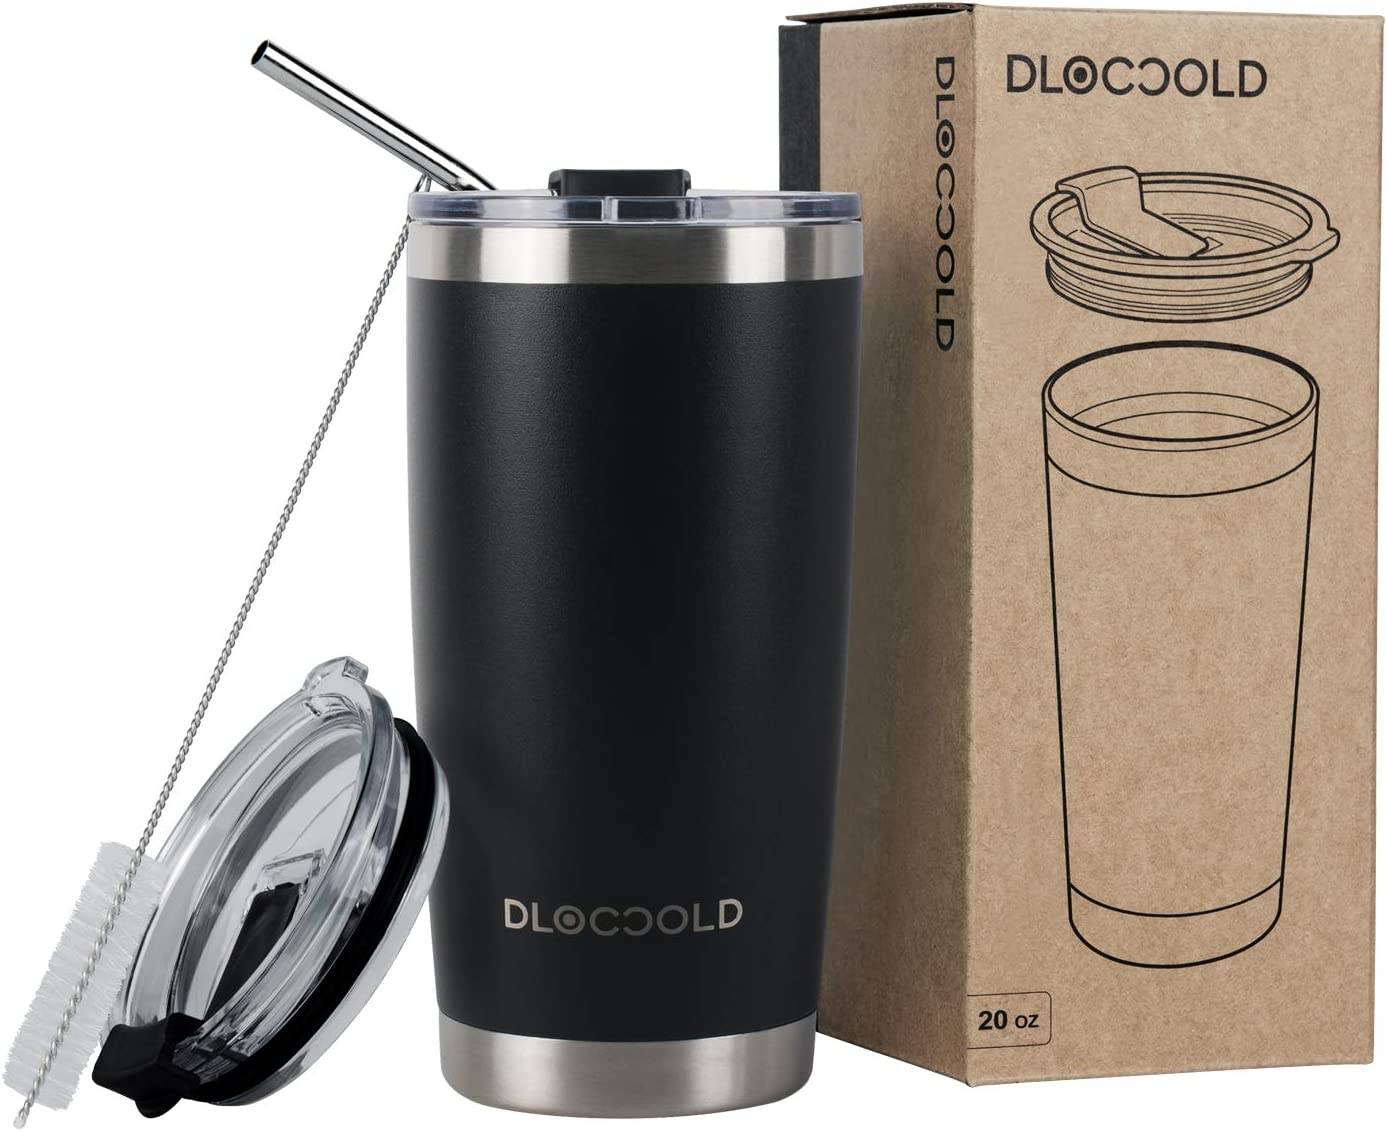 DLOCCOLD 20oz Tumbler Double Wall Stainless Steel Vacuum Insulated Coffee Travel Mug with Lid and Straw (Back, 20oz)